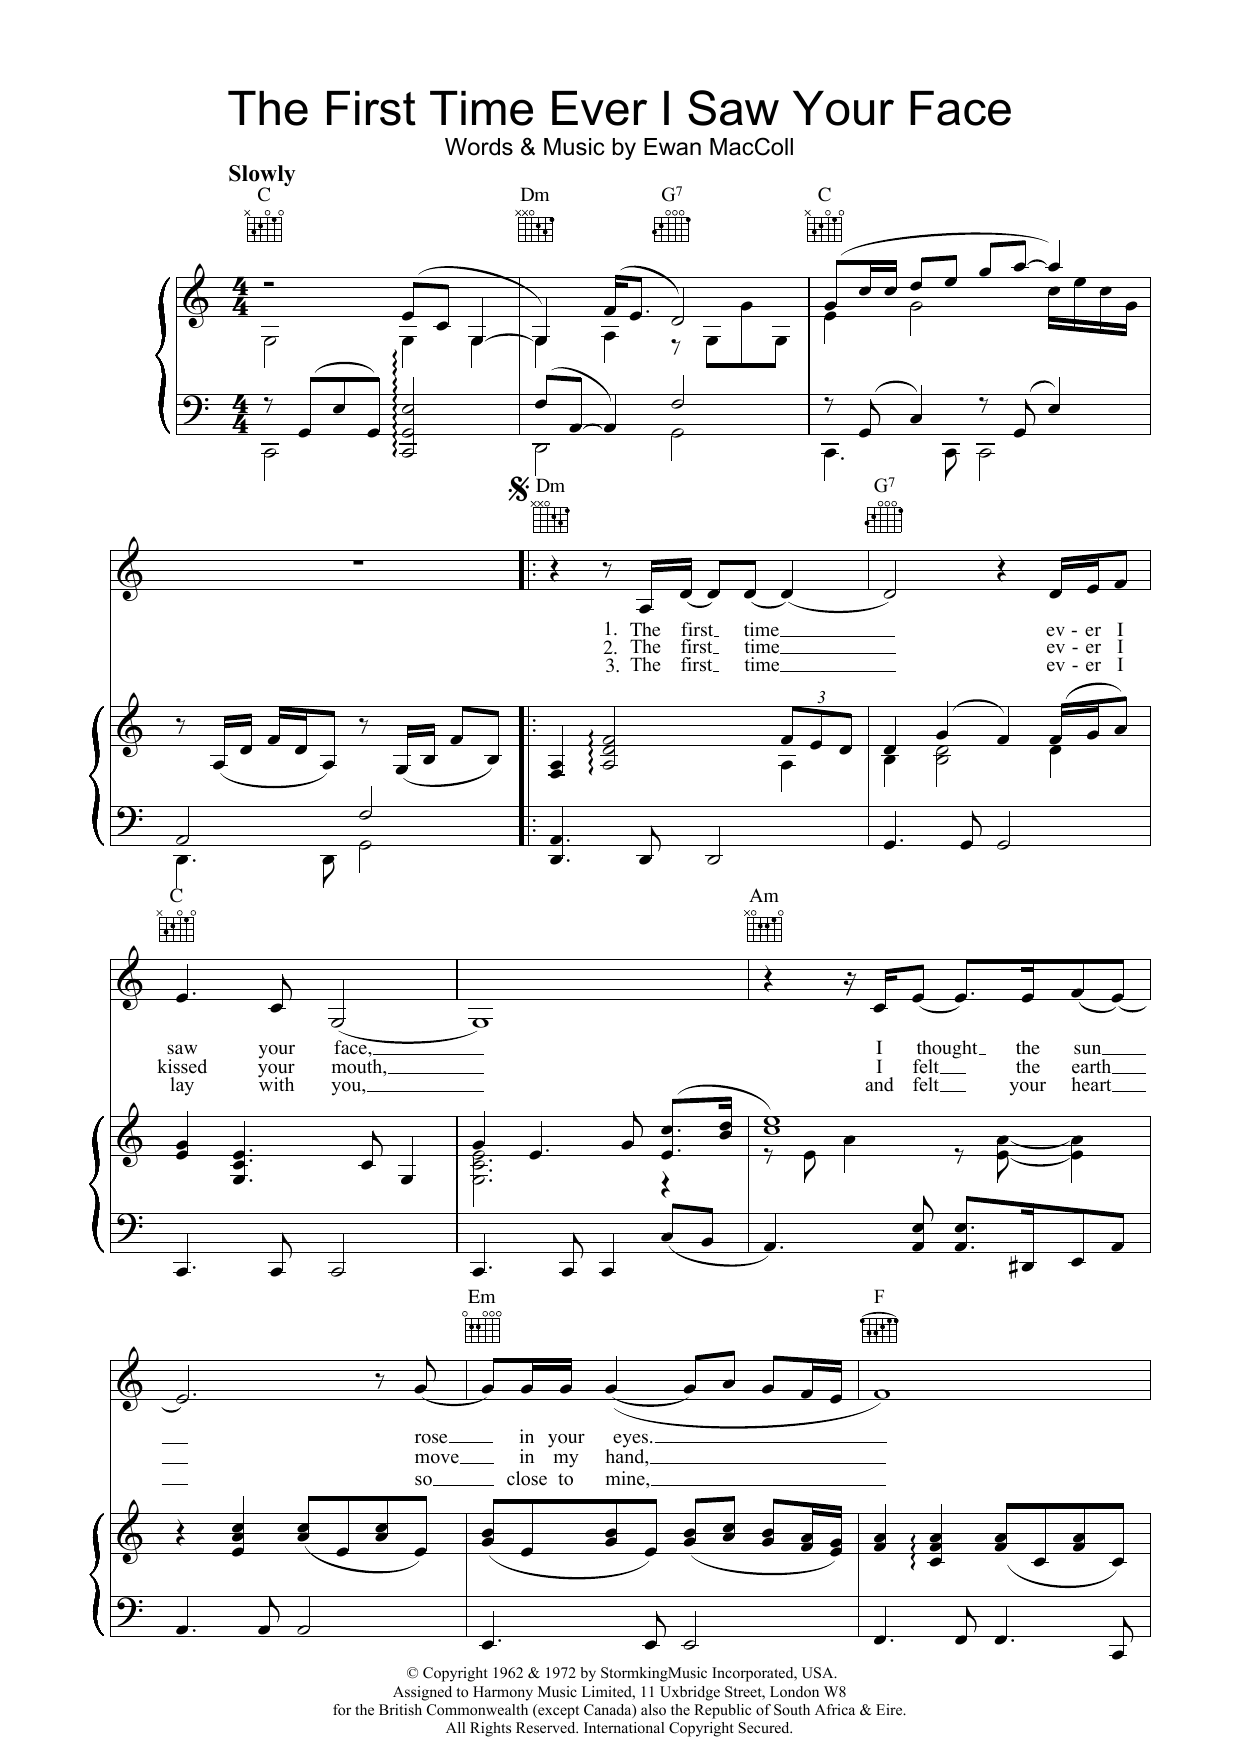 The First Time Ever I Saw Your Face sheet music